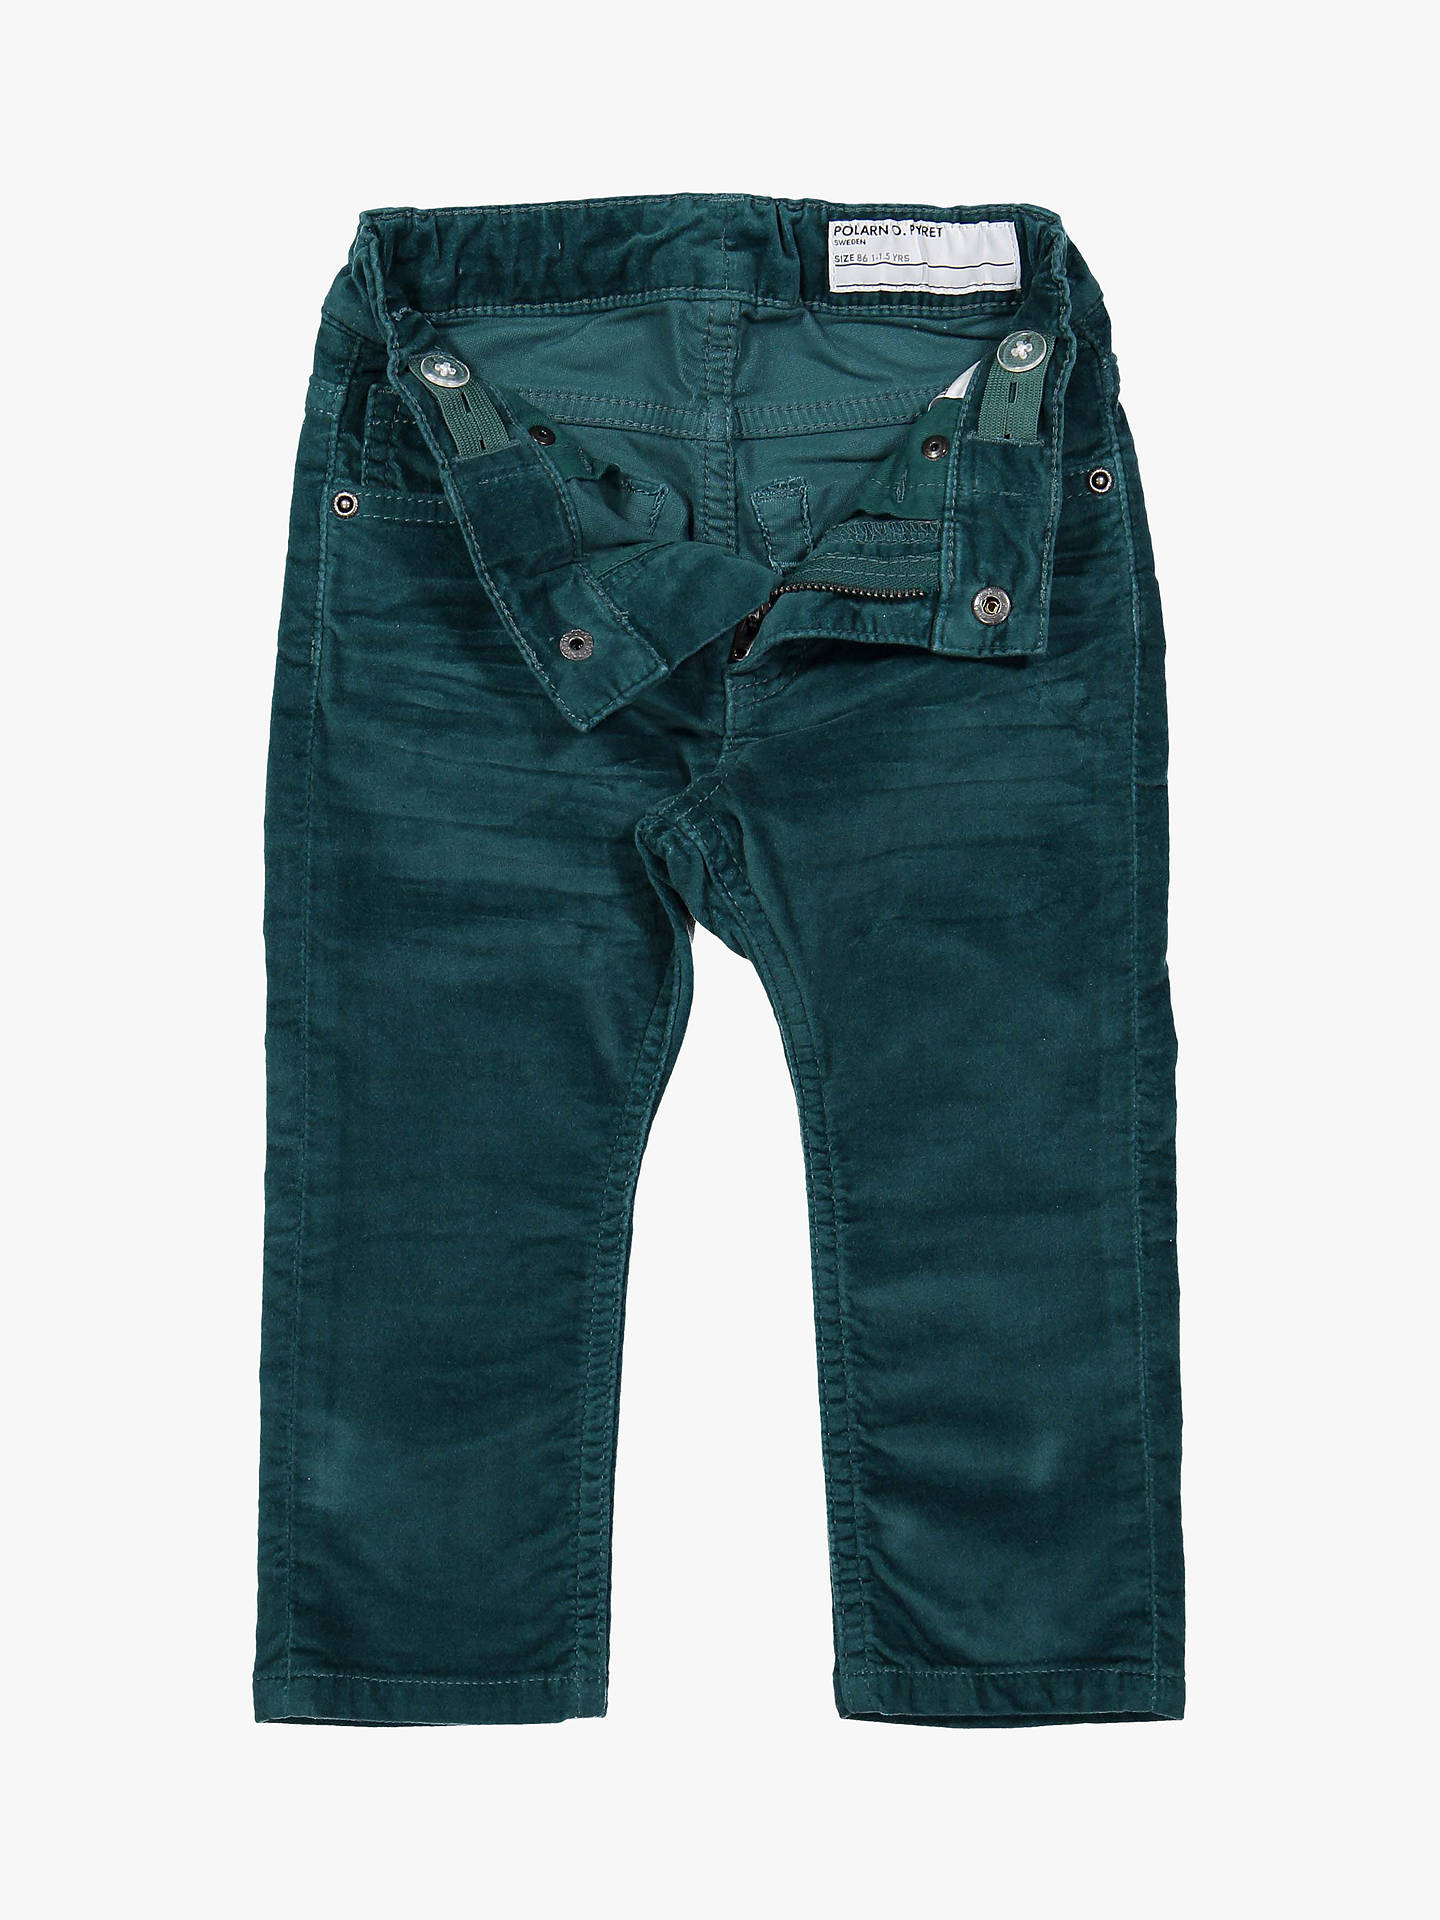 Buy Polarn O. Pyret Baby Velvet Trousers, Green, 6-9 months Online at johnlewis.com